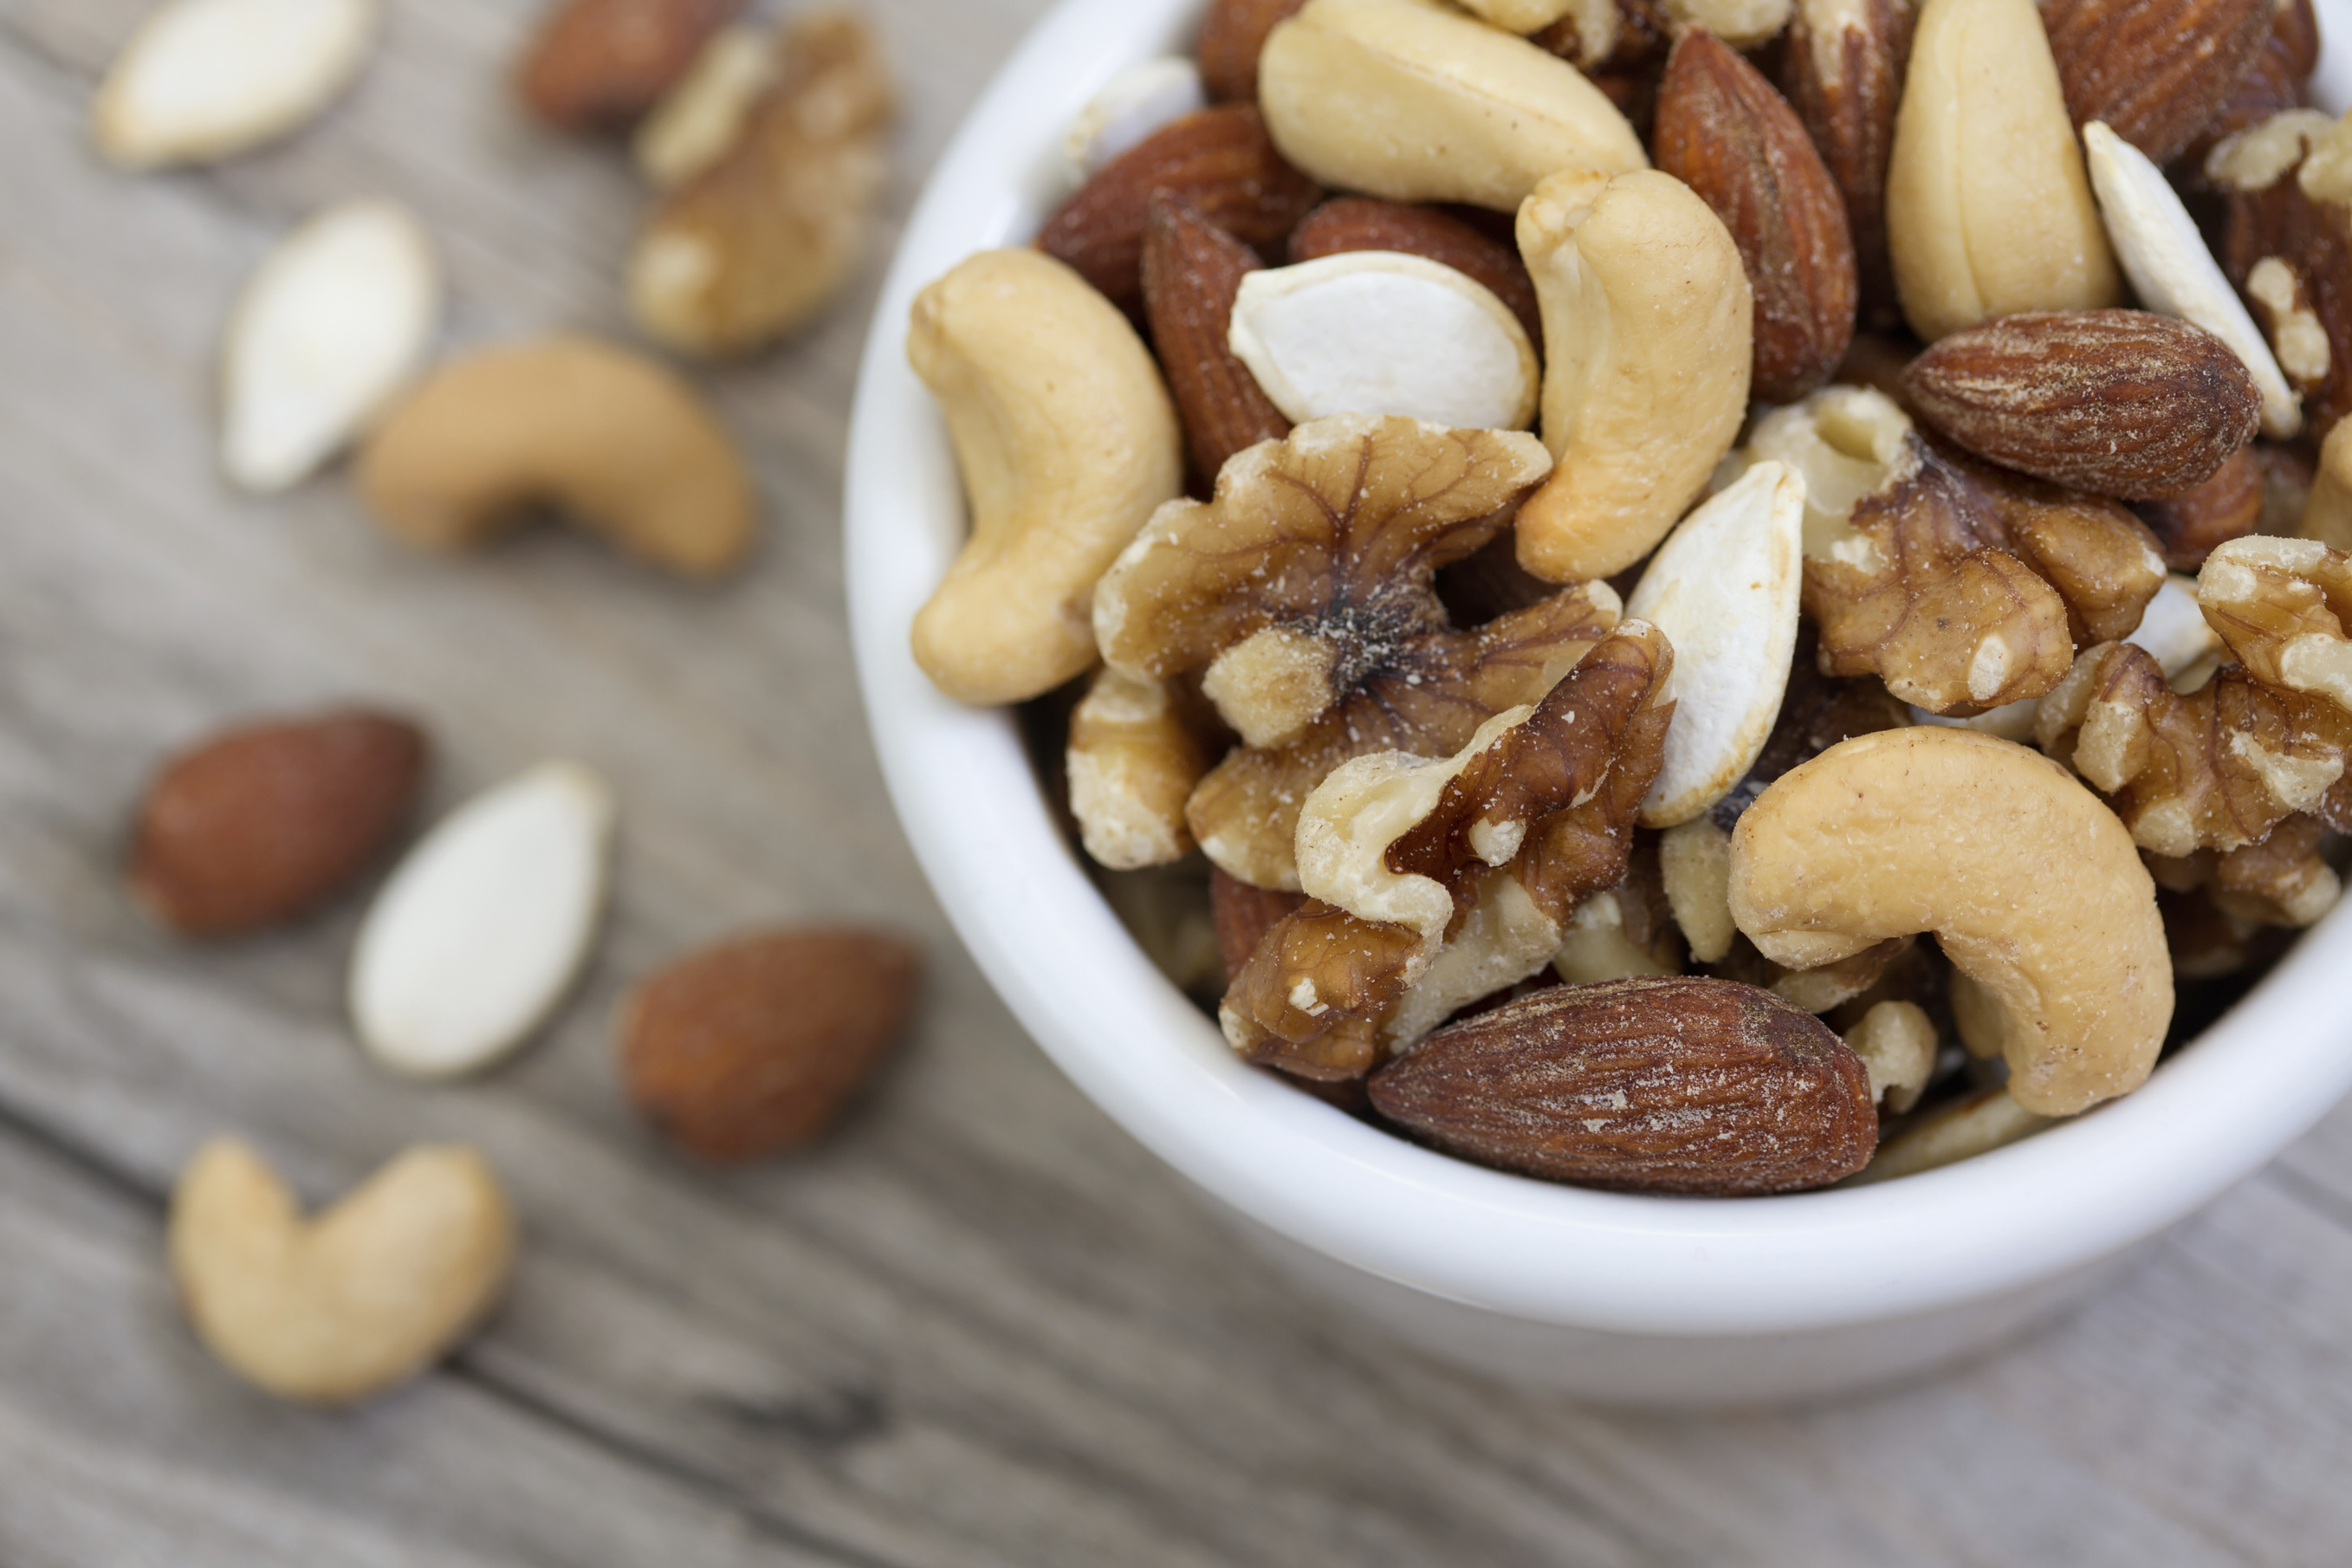 Mixed nuts in a bowl on a wooden tabletop.